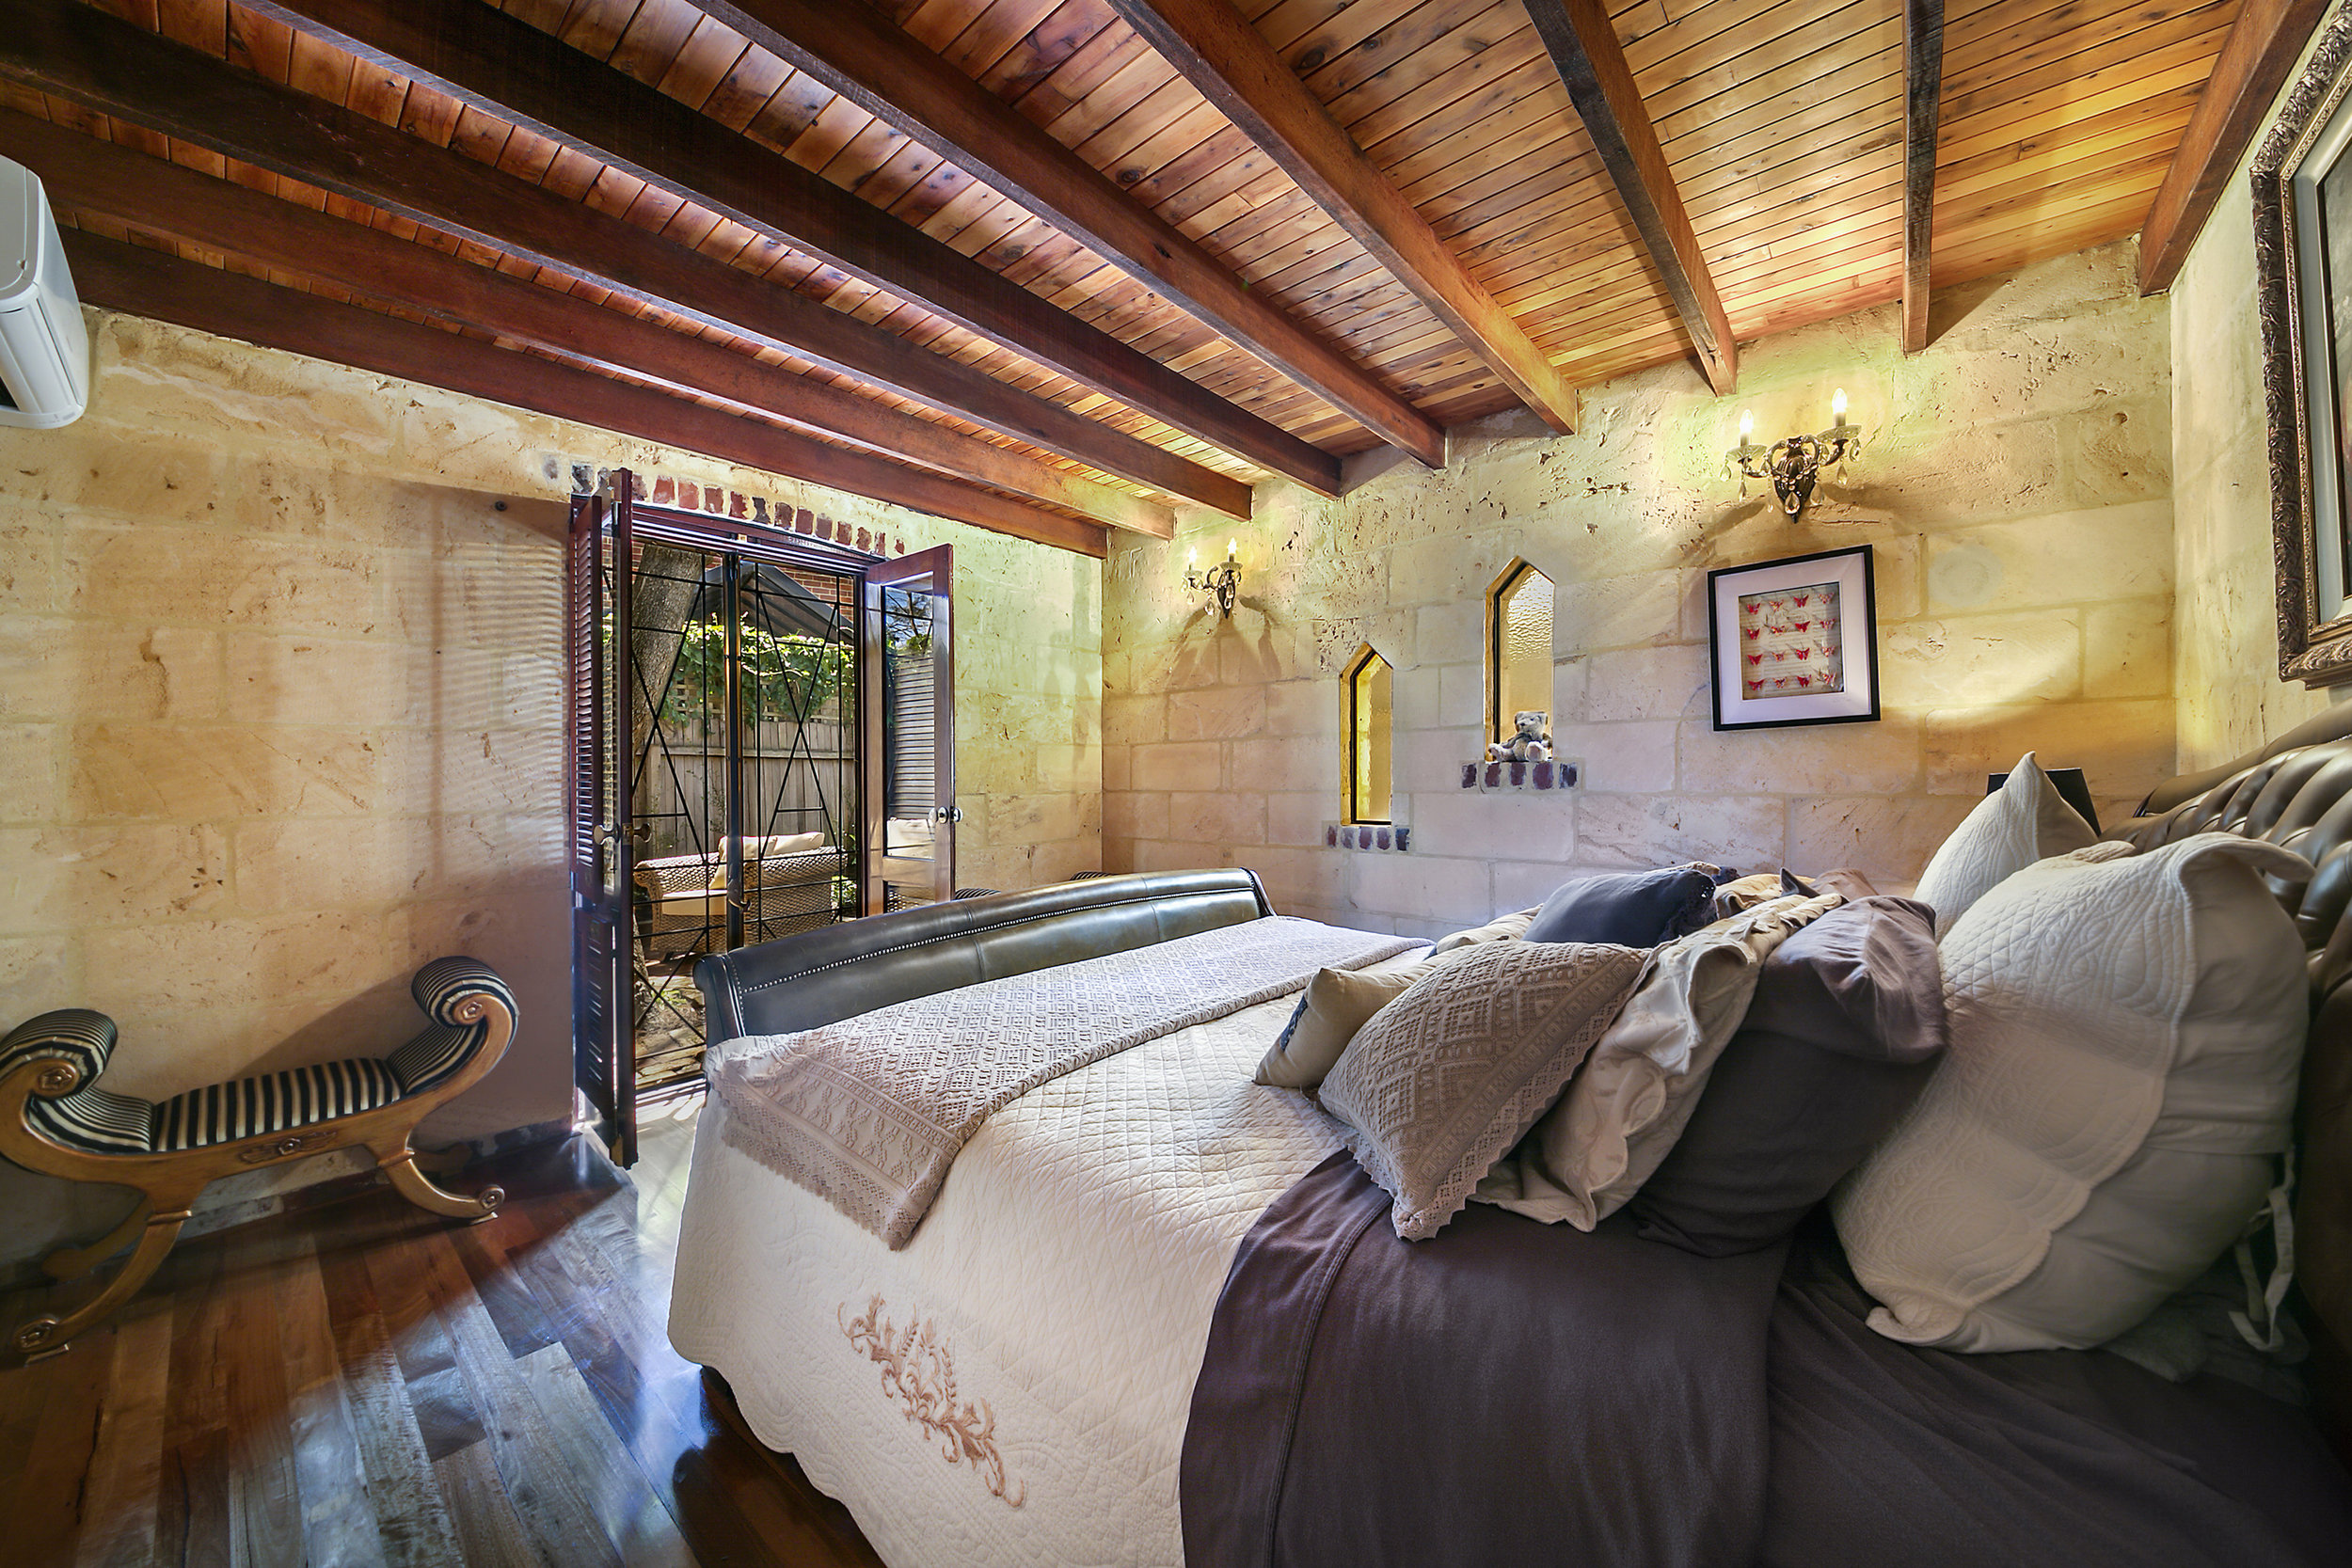 Photograph of bedroom in a Subiaco house, sold by deceased estates specialist Simon Blake-Graham